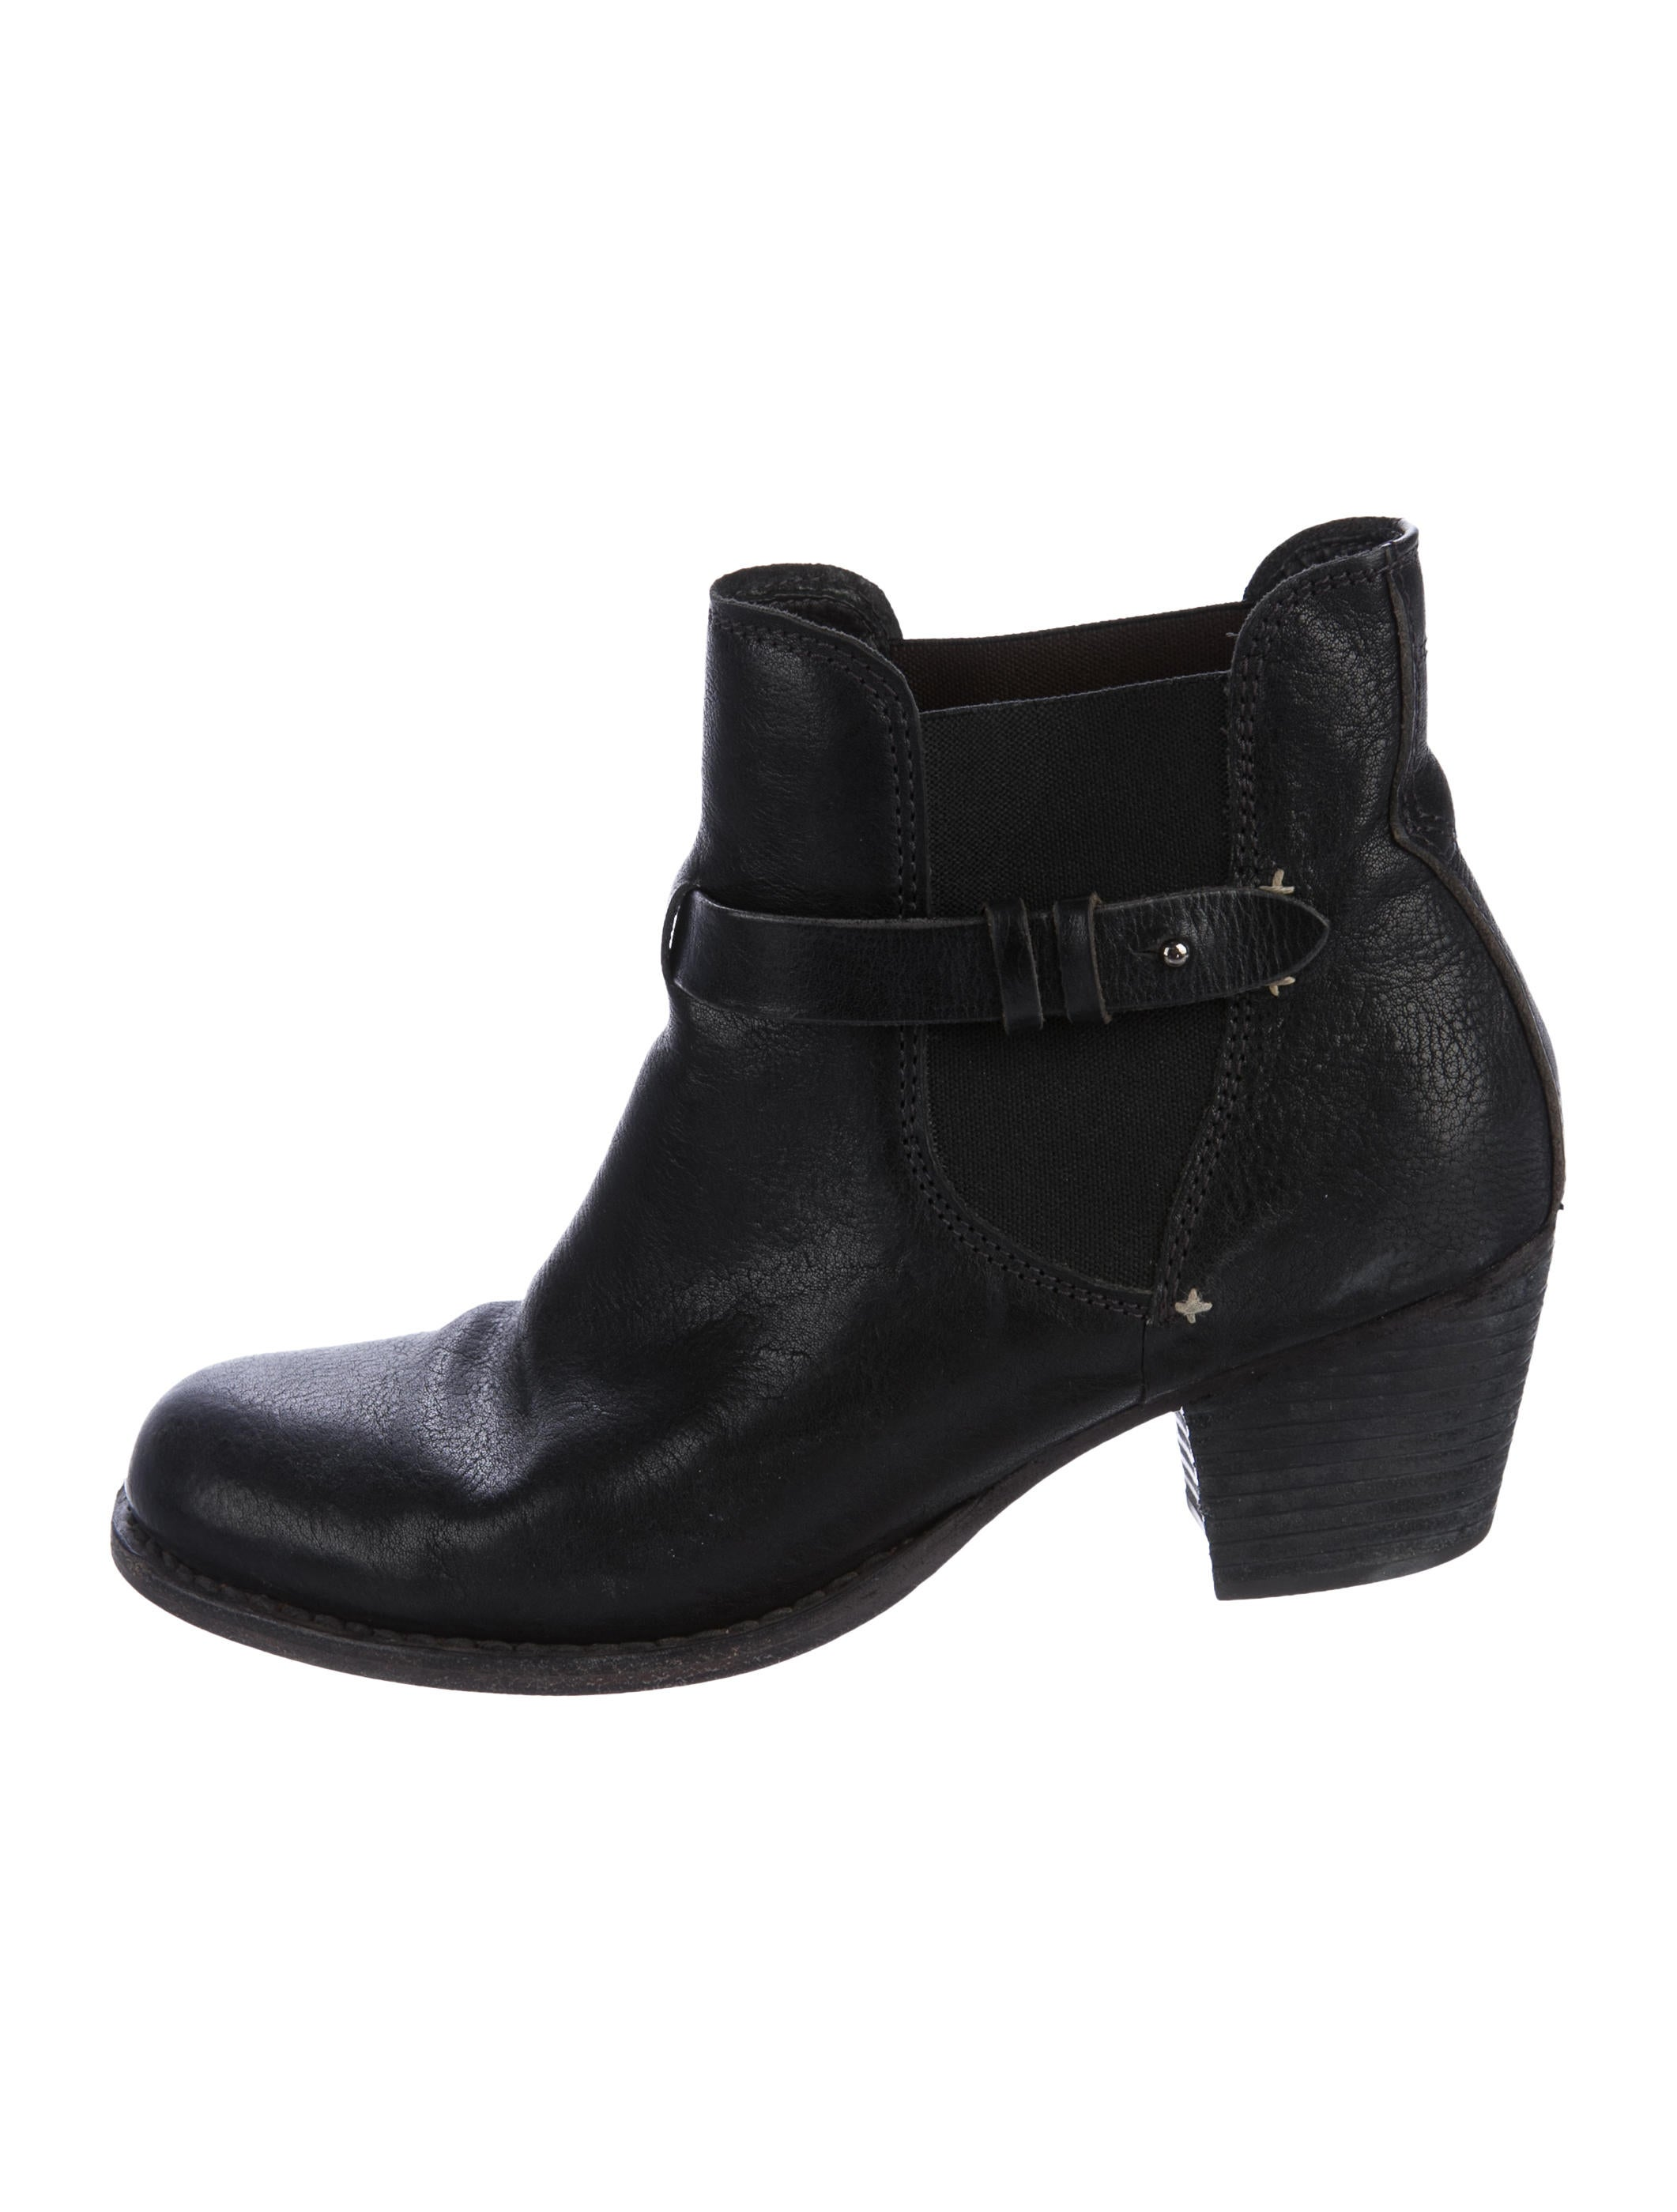 Rag & Bone Durham Round-Toe Ankle Boots discount geniue stockist new outlet cost footaction sale online UXEeTDtr7